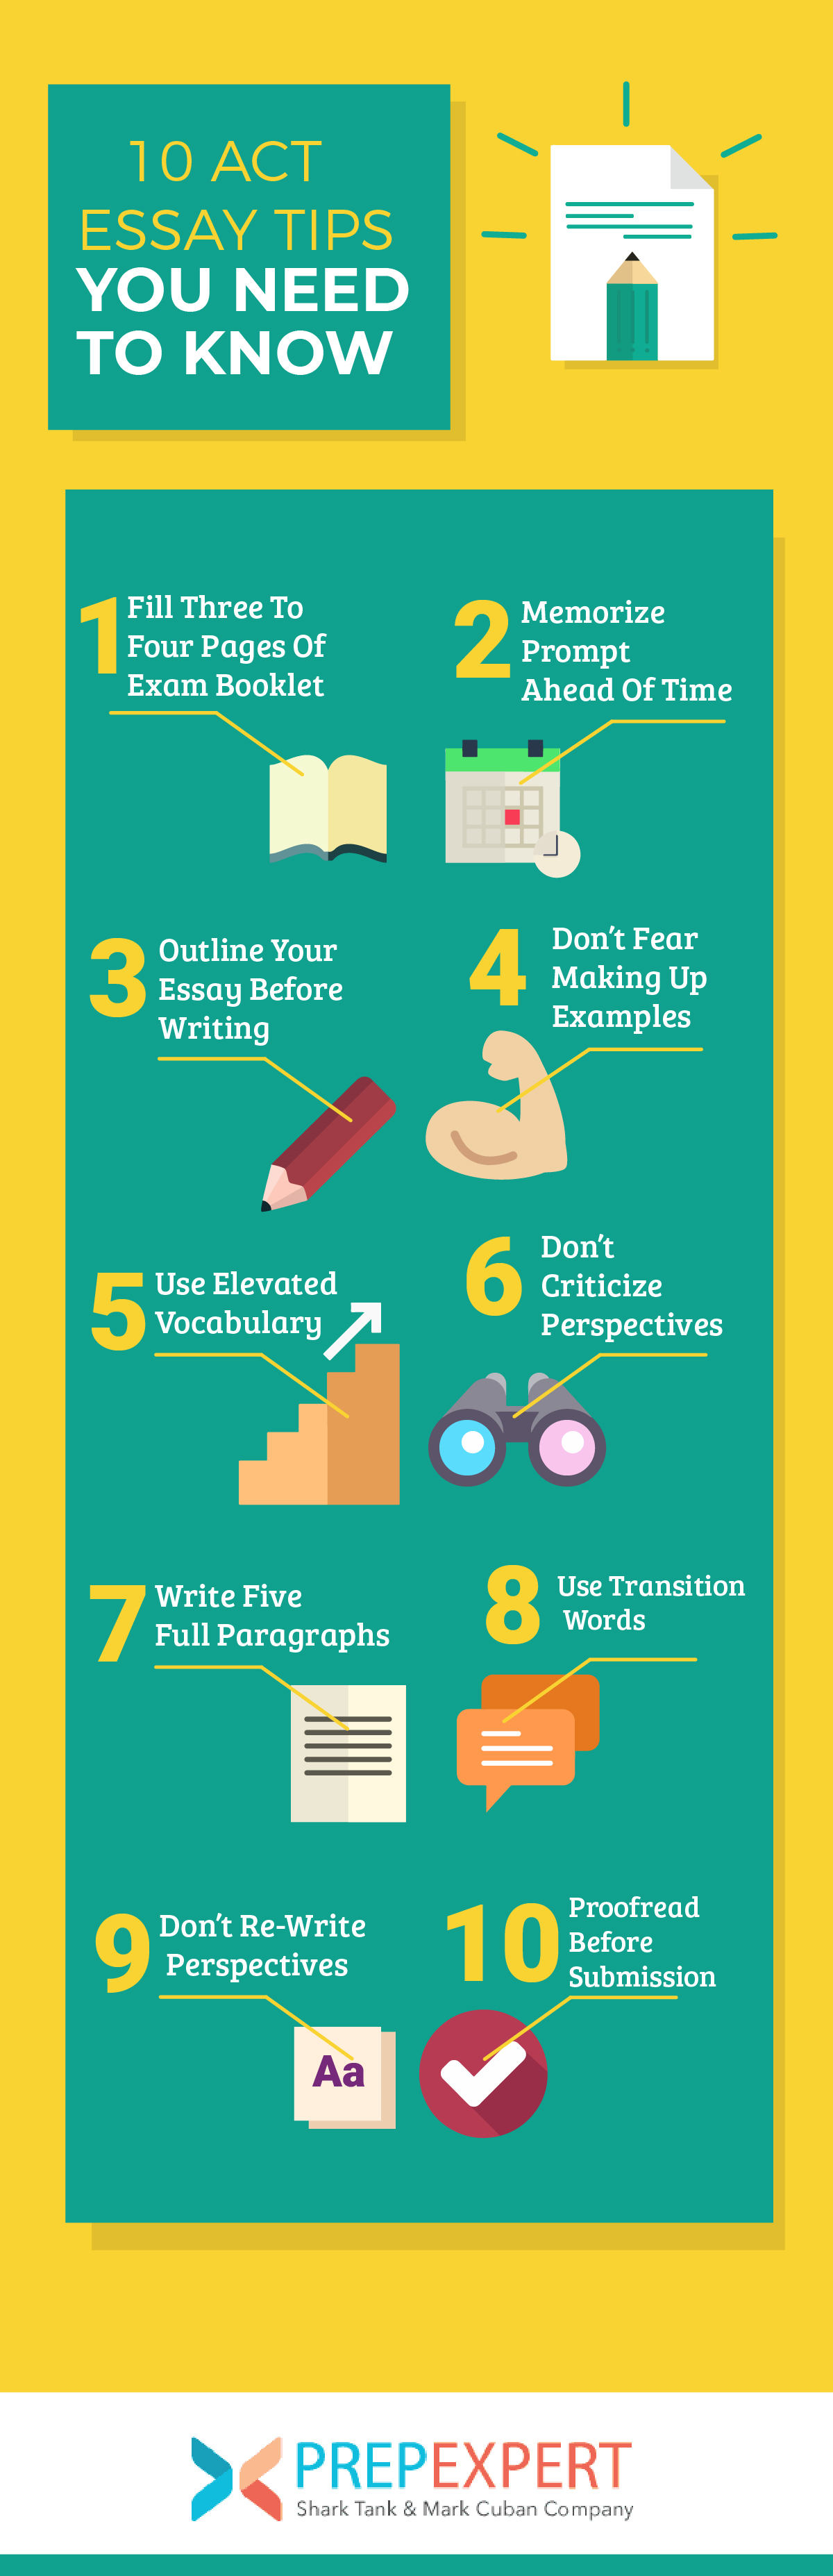 017 Essay Example Act 235585 Essayinfographics 052918 Fearsome Rubric Tips Score Distribution Full